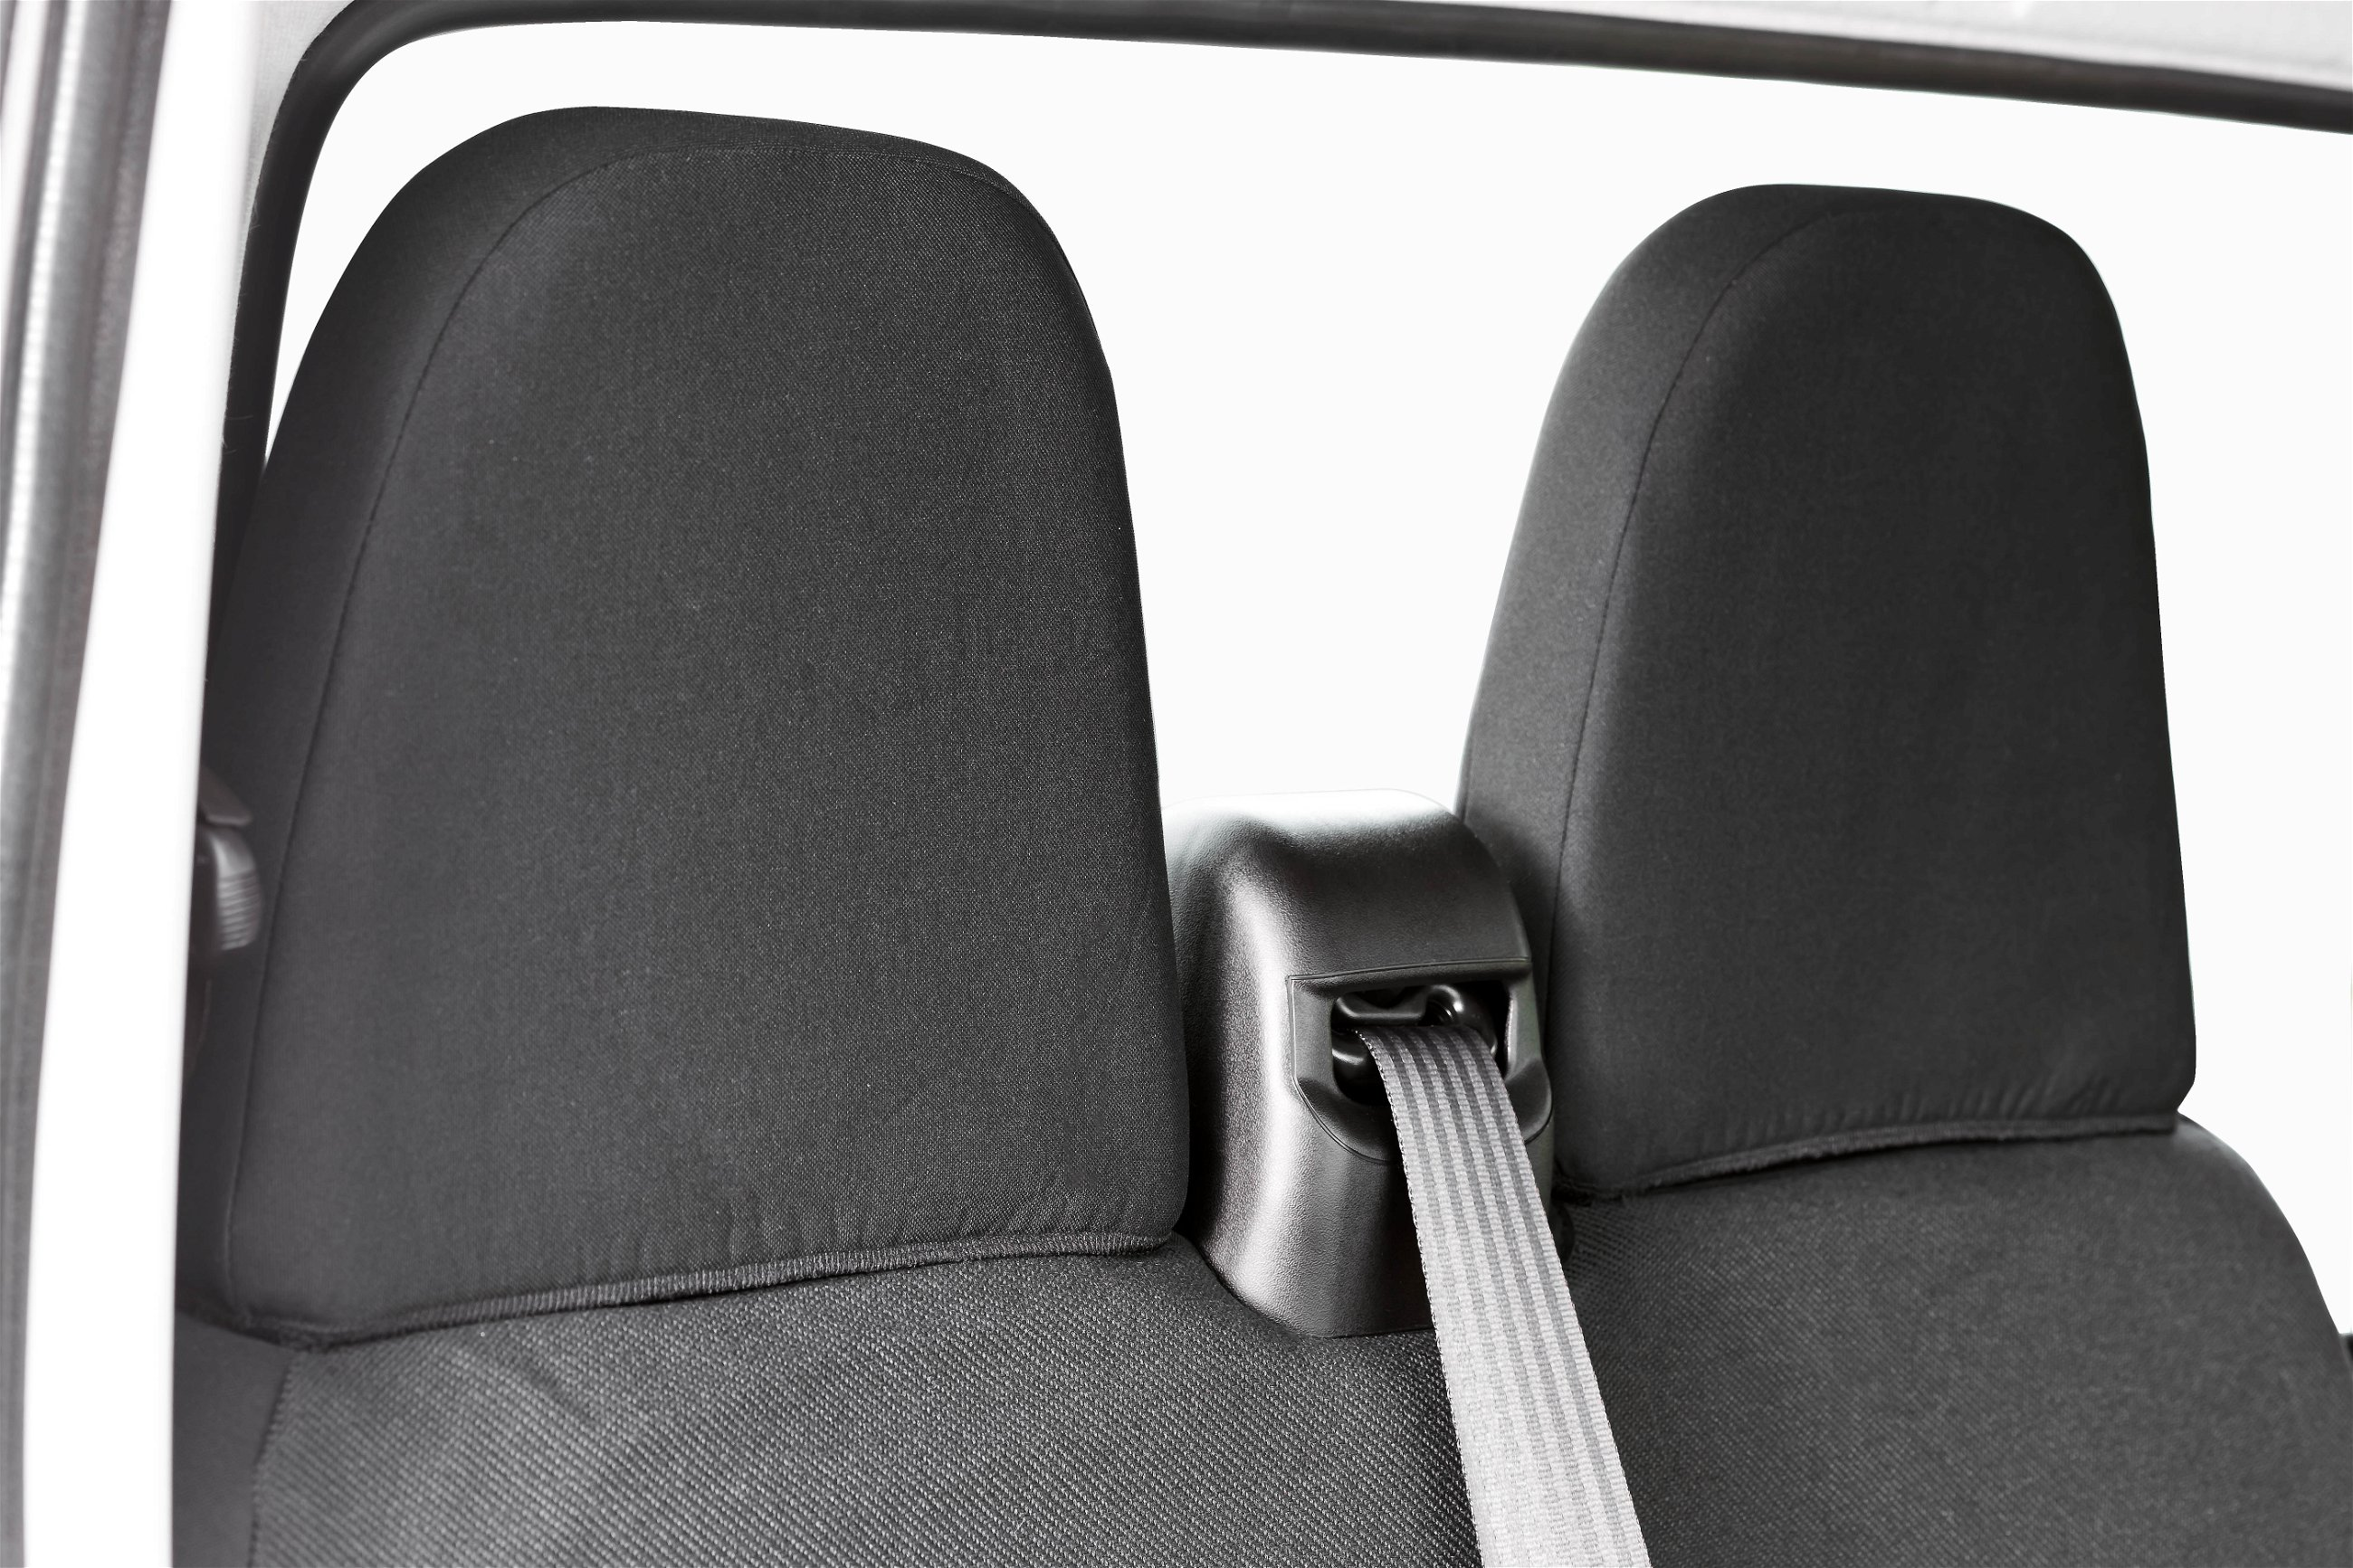 Charcoal Black Leatherette Trim To Fit A Iveco Daily 2006 Van 1 Single + 1 Double Seat Covers